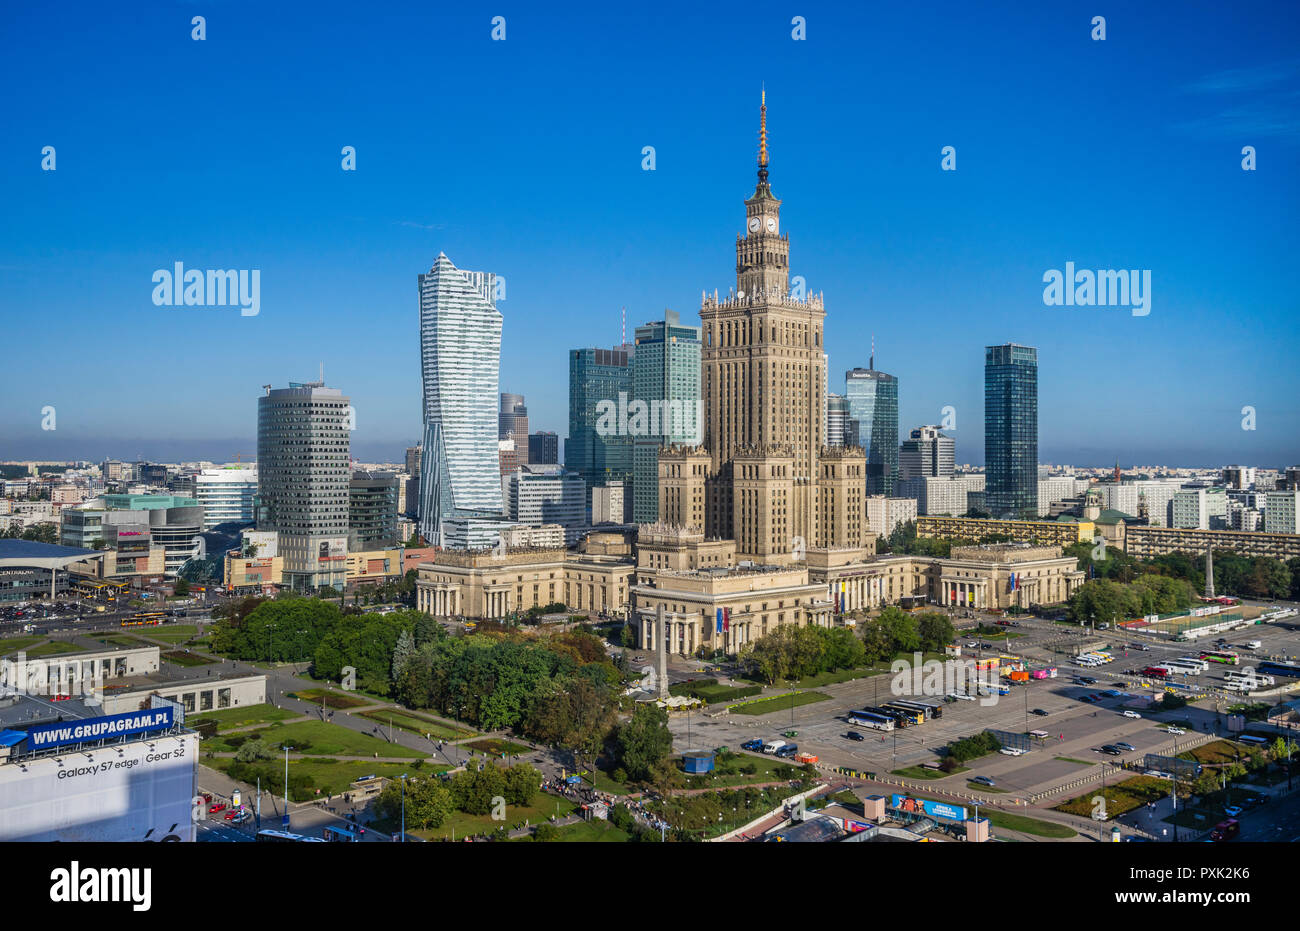 Warsaw Centrum, view of the very heart of the polish capital, with the Neomodern Warsaw Spire and the Russian Weding Cake style soc-realist Palace of  Stock Photo